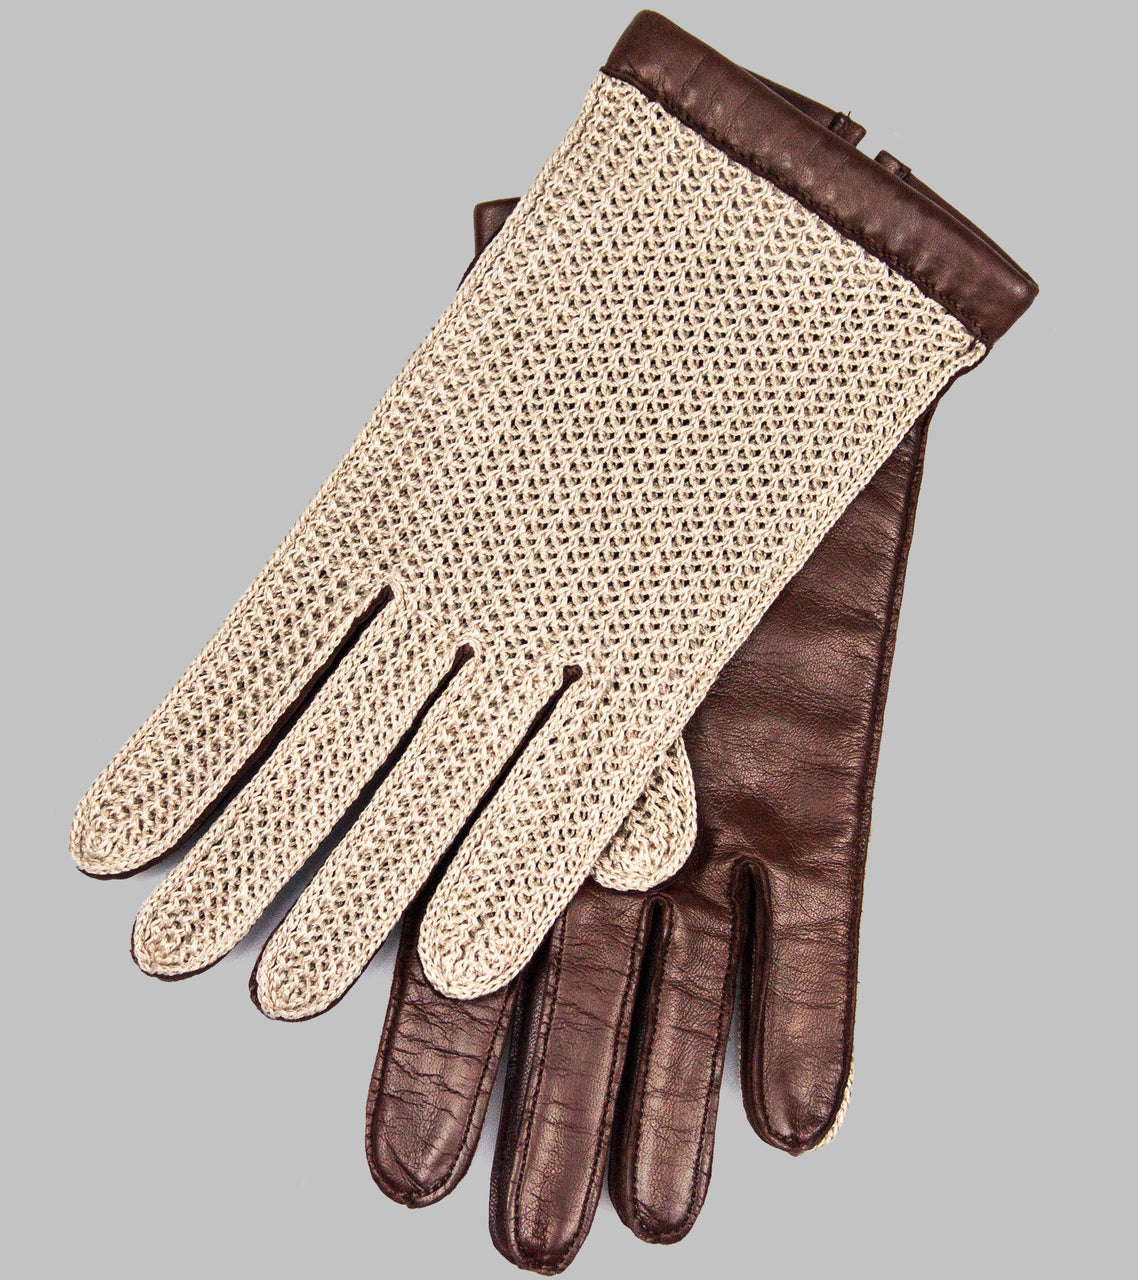 Bryceland's Driving Gloves